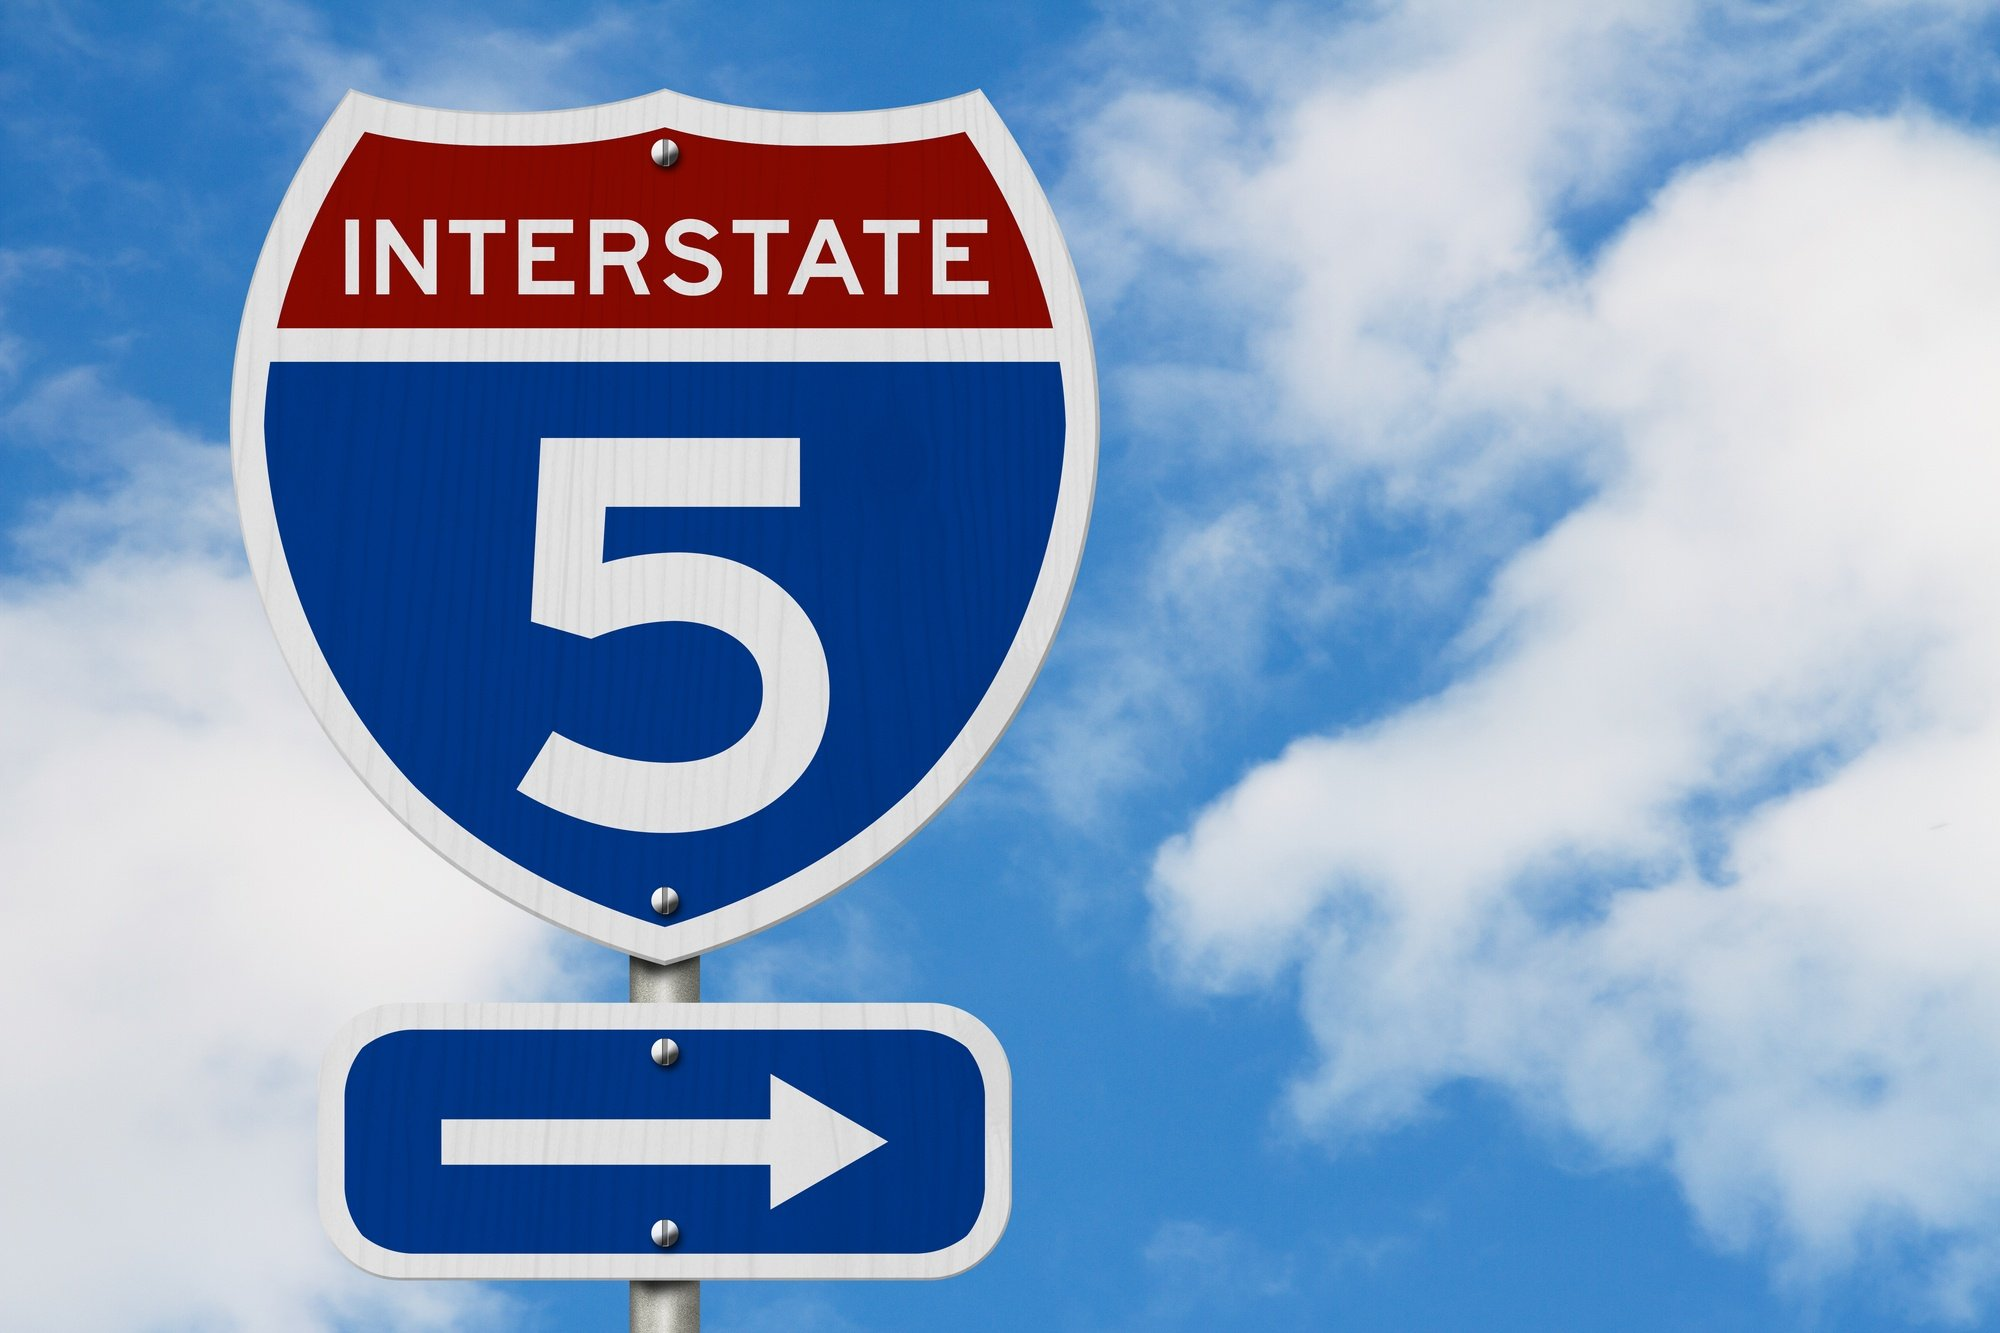 Highway 5 attractions for families